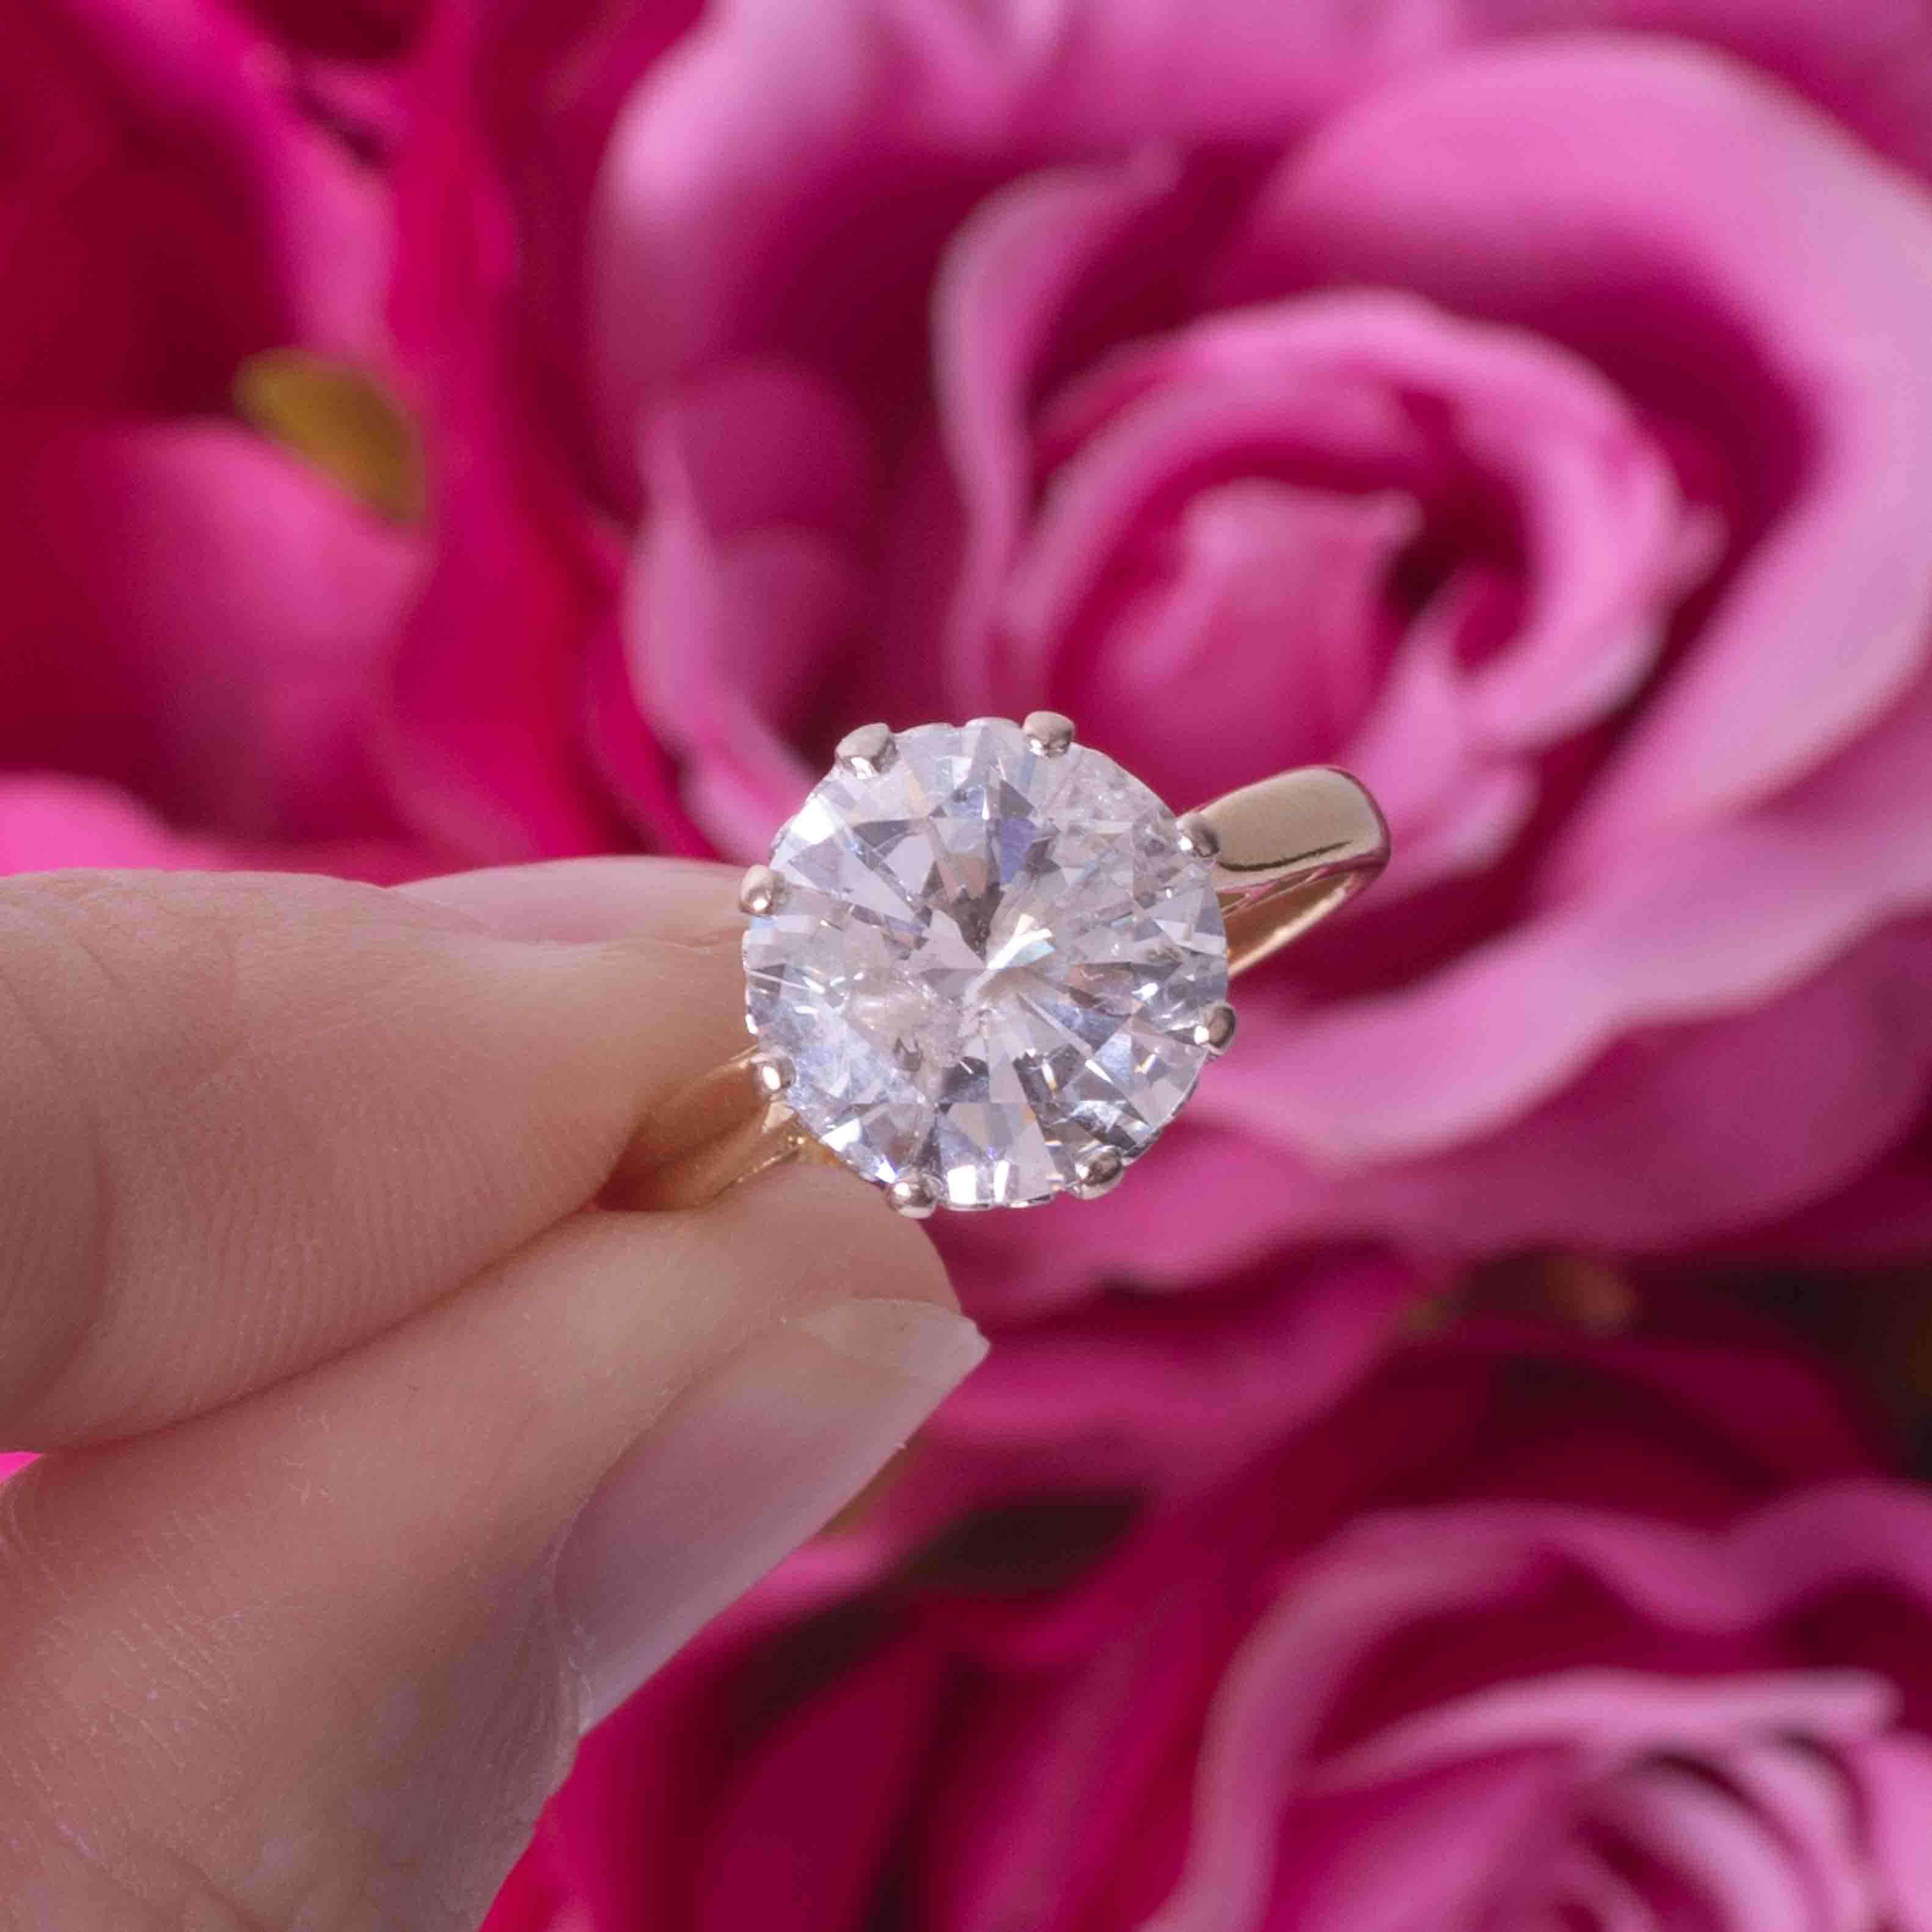 An impressive 18ct yellow & white gold diamond solitaire ring set with approx. 4.00 carats of - Image 5 of 6